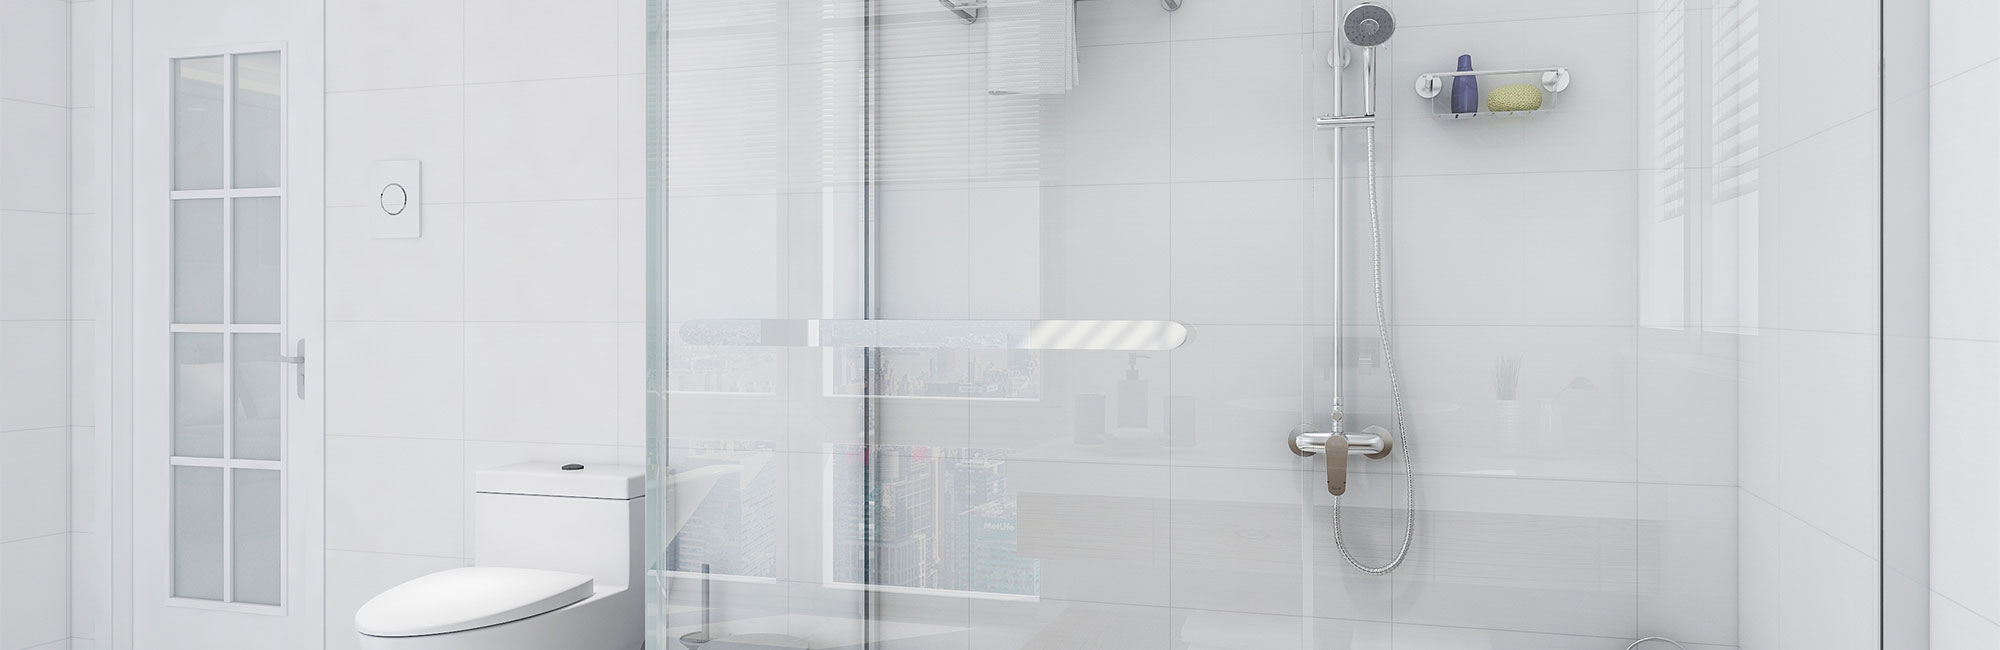 White Bathroom with Glass Door Shower